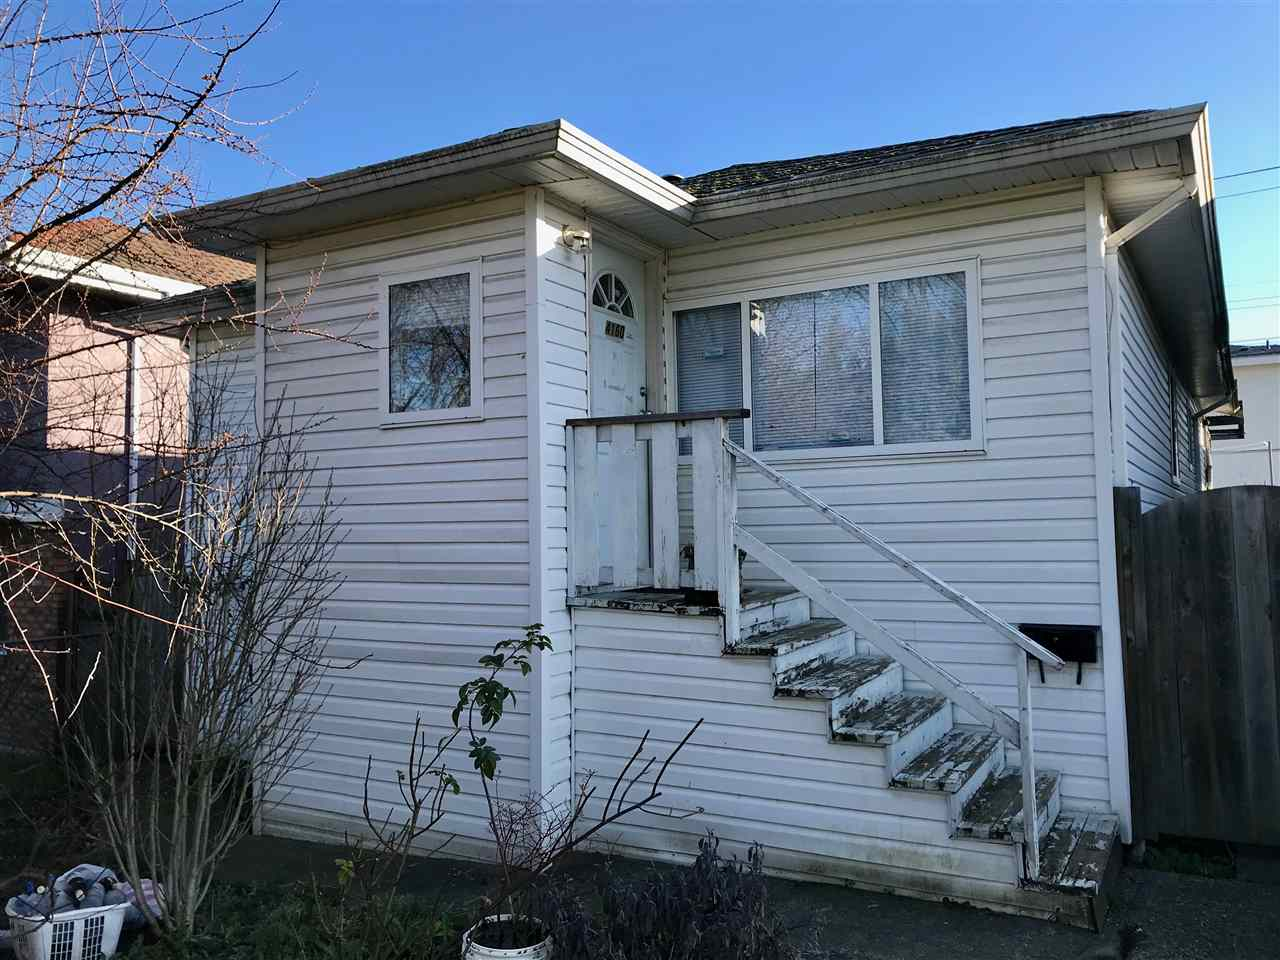 ATTN: first time buyers/investors/builders. Investment house on level lot located in desirable Burnaby Hospital Area. Great layout with 3 bed/ 2 bath and big living room and kitchen on main.  2 self contained suite of each 1 bd/ 1 bath in basement are great mortgage helpers. Shared laundry.  Quiet inside with double glazed windowsand new furnace . Large covered sundeck in rear yard with detached garage + covered carport. Some TLC and elbow grease will make this  property shine. Cascade Heights Elementary school is 1 blk away. Measurements are approximate, Buyer to verify if deemed important. Showing by appointment only.